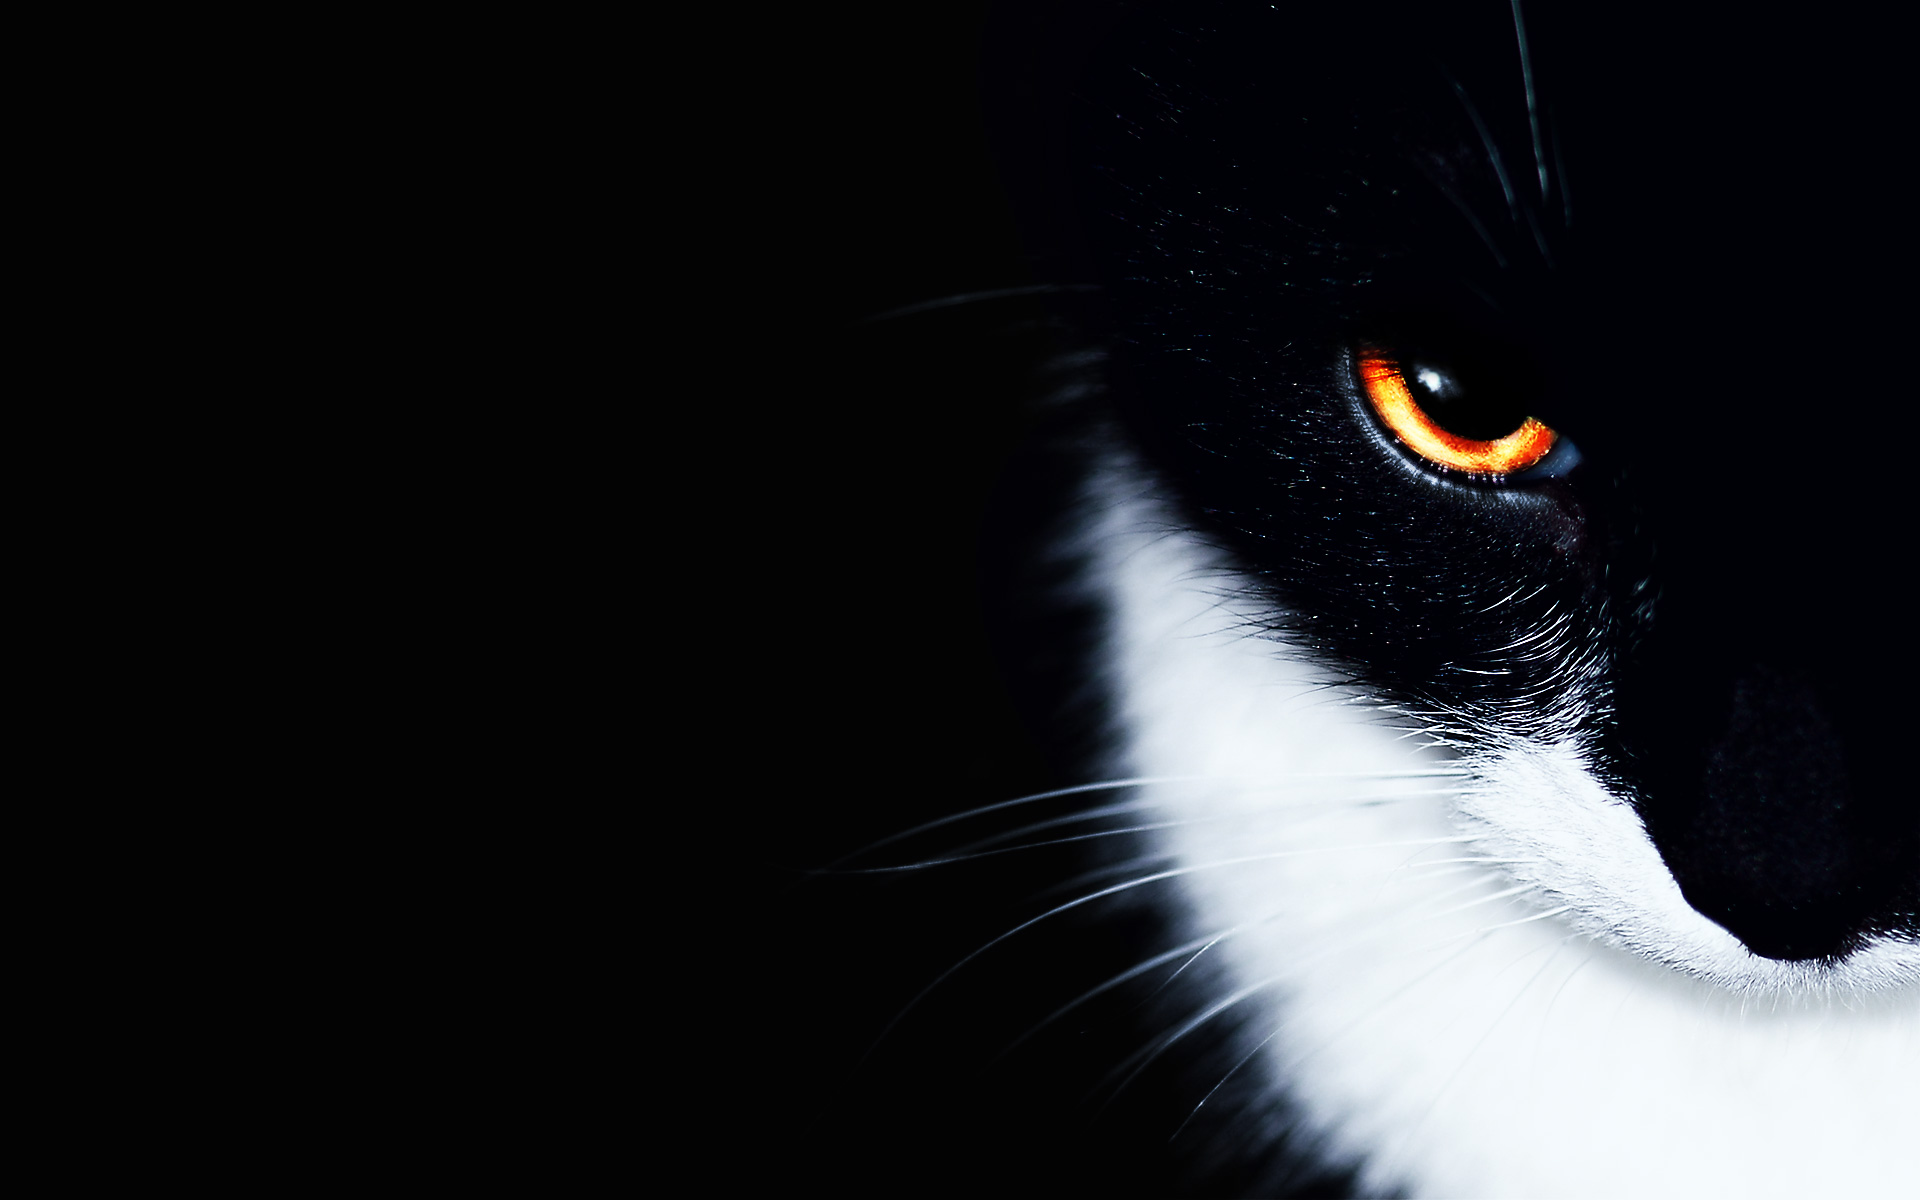 cat hd wallpapers backgrounds wallpaper 1920x1200